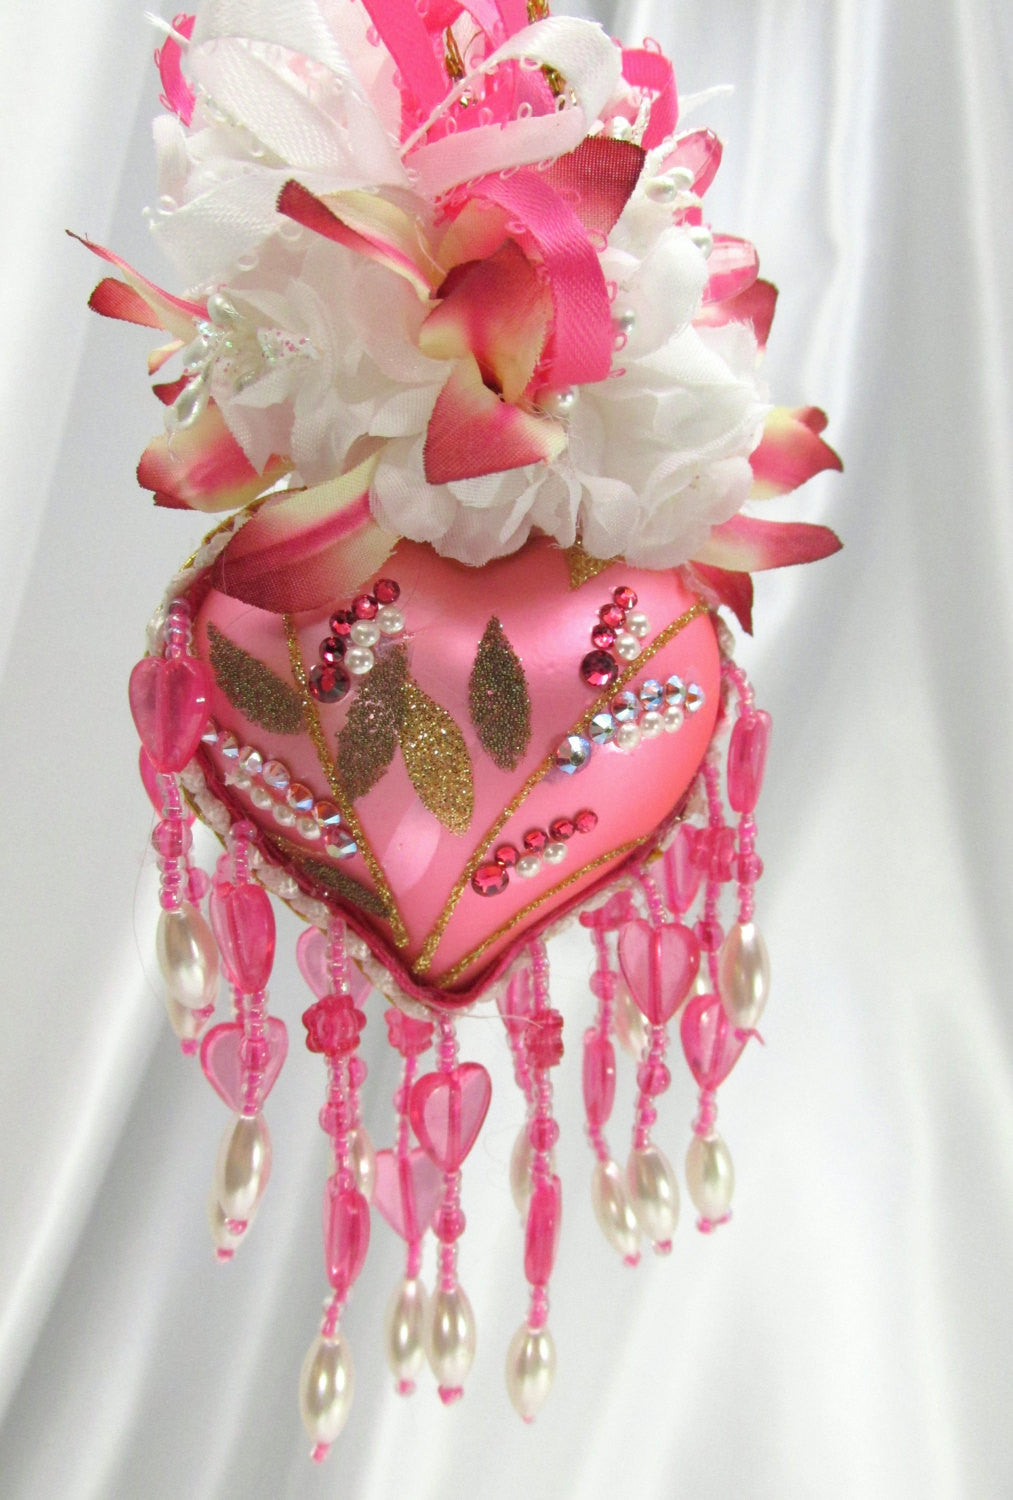 Hot Raspberry Pink and White Heart Victorian Beaded Ornament - Odyssey Creations